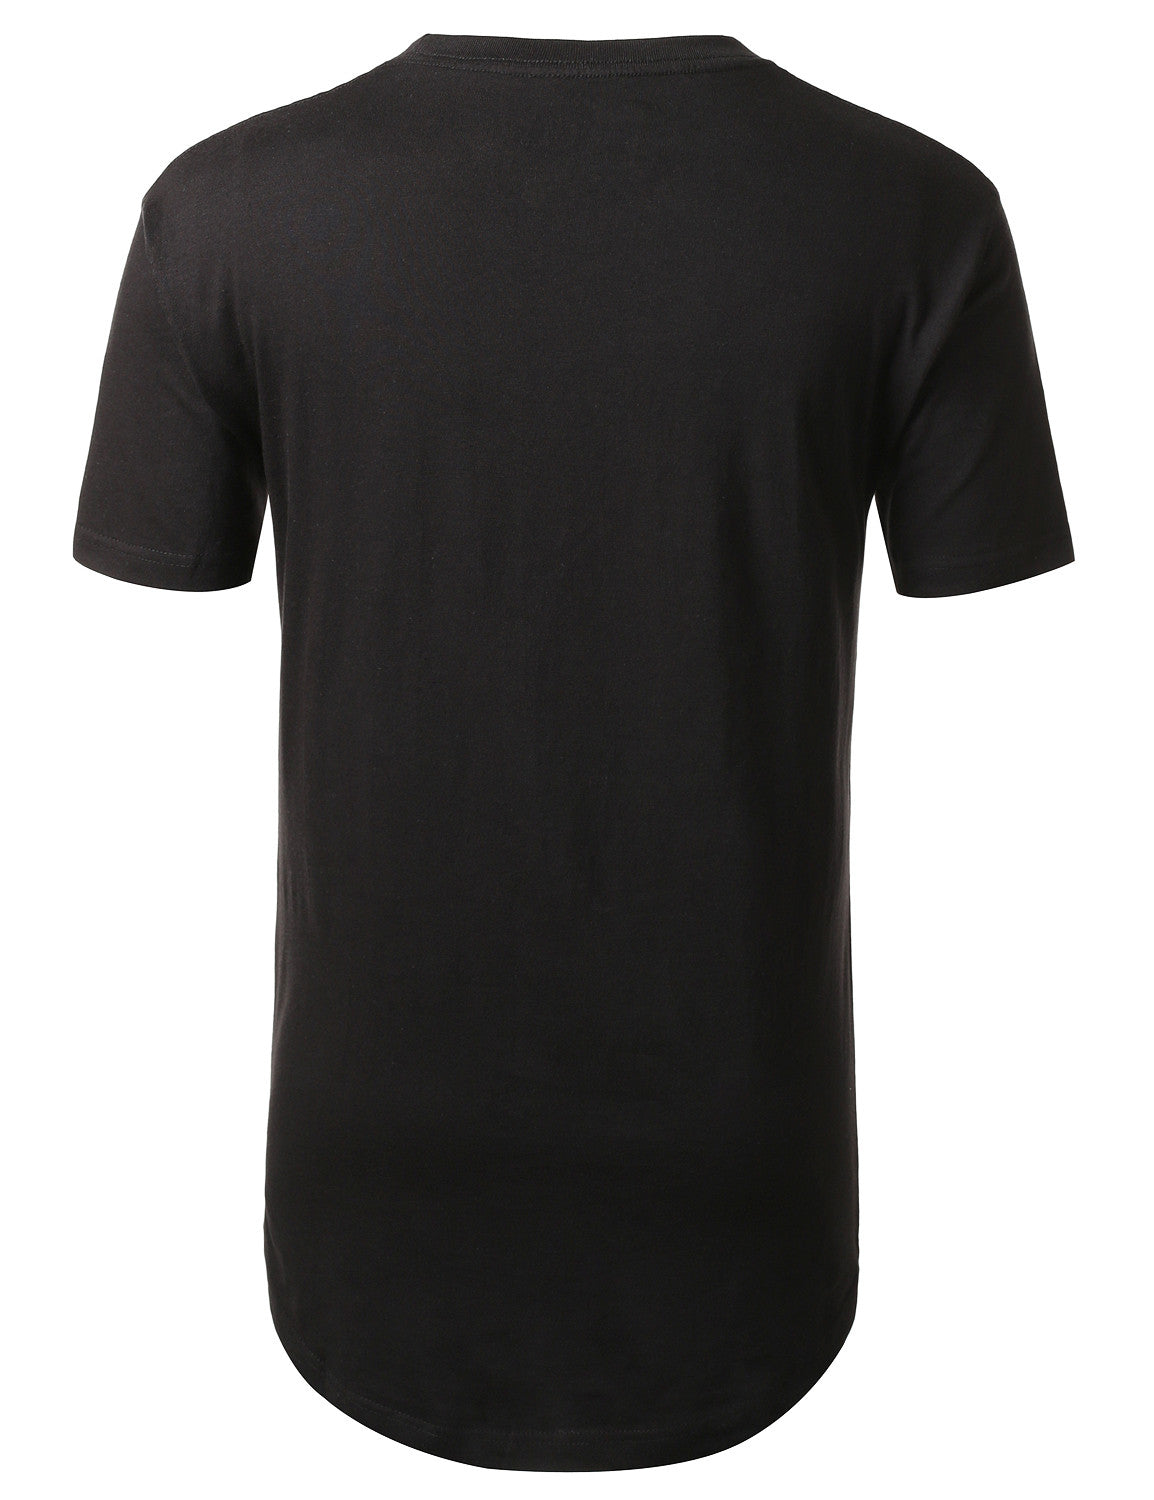 BLACK Naked USA Flag Longline Tshirts- URBANCREWS